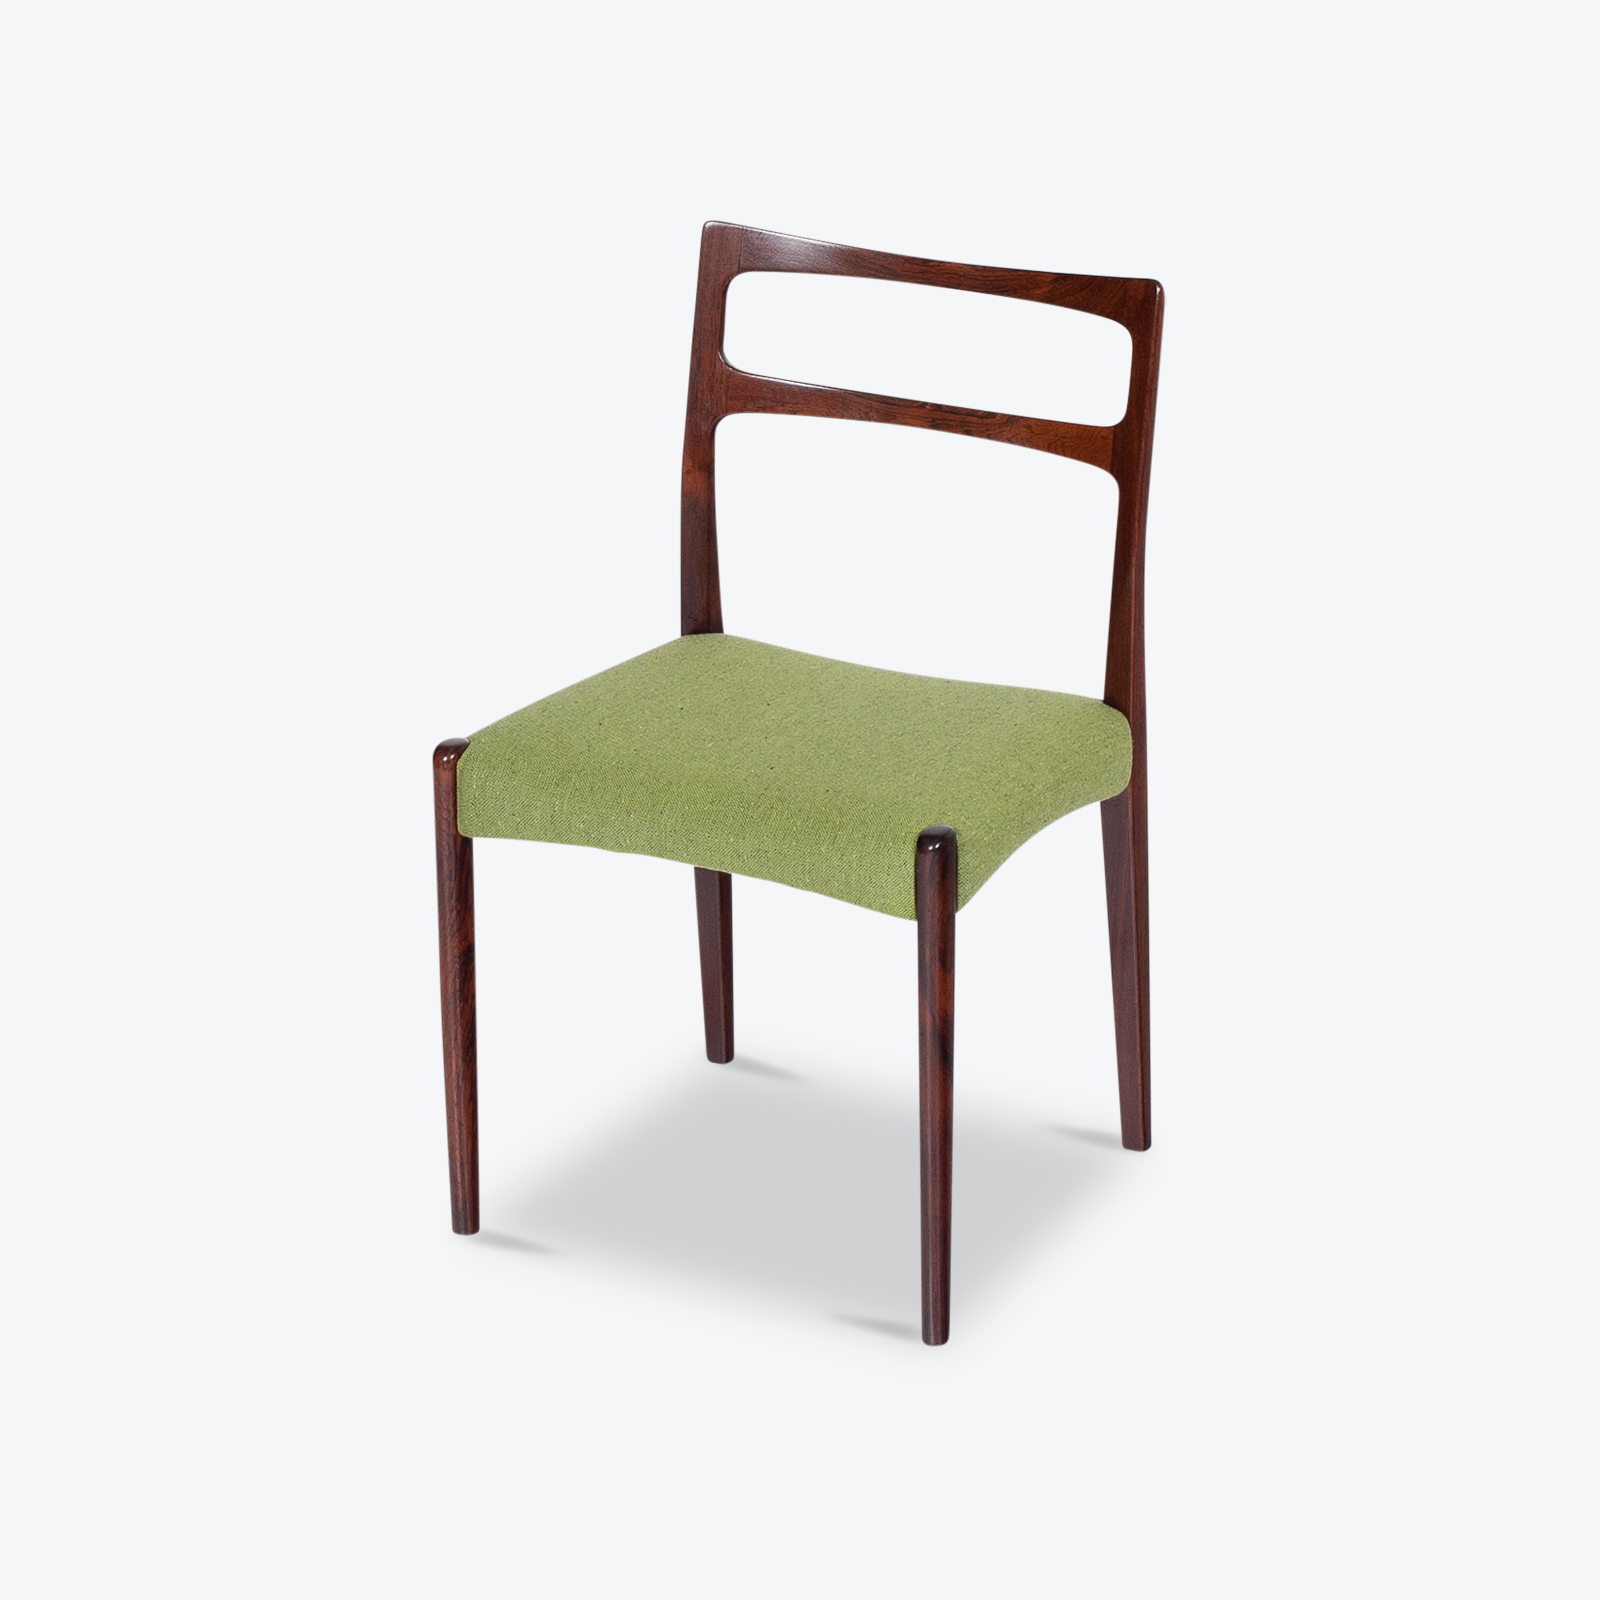 Set Of 4 Ladder Back Dining Chairs By Niels Moller In Rosewood, 1960s, Denmark Hero